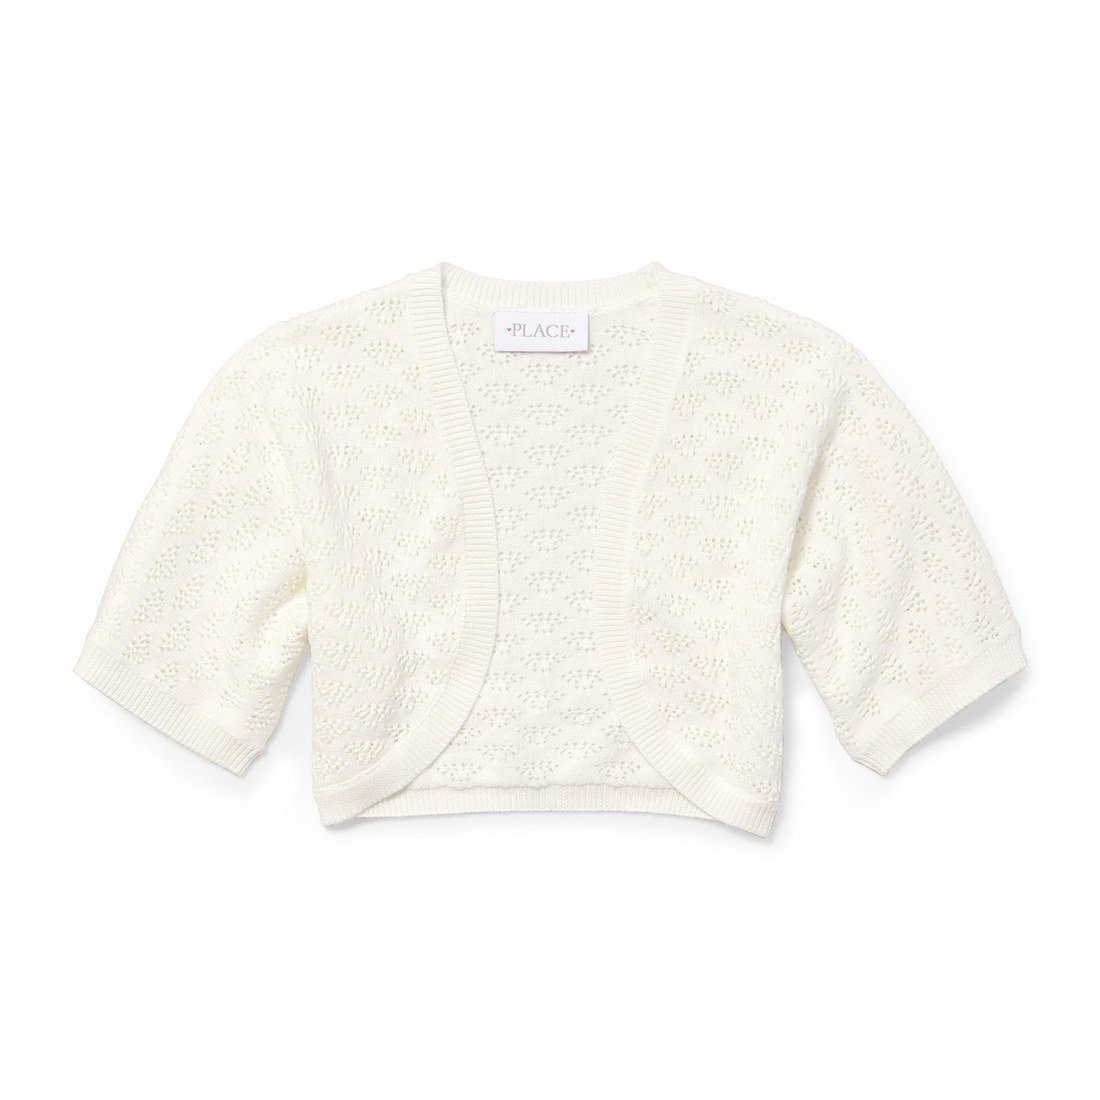 The Childrens Place Girls Cardigan